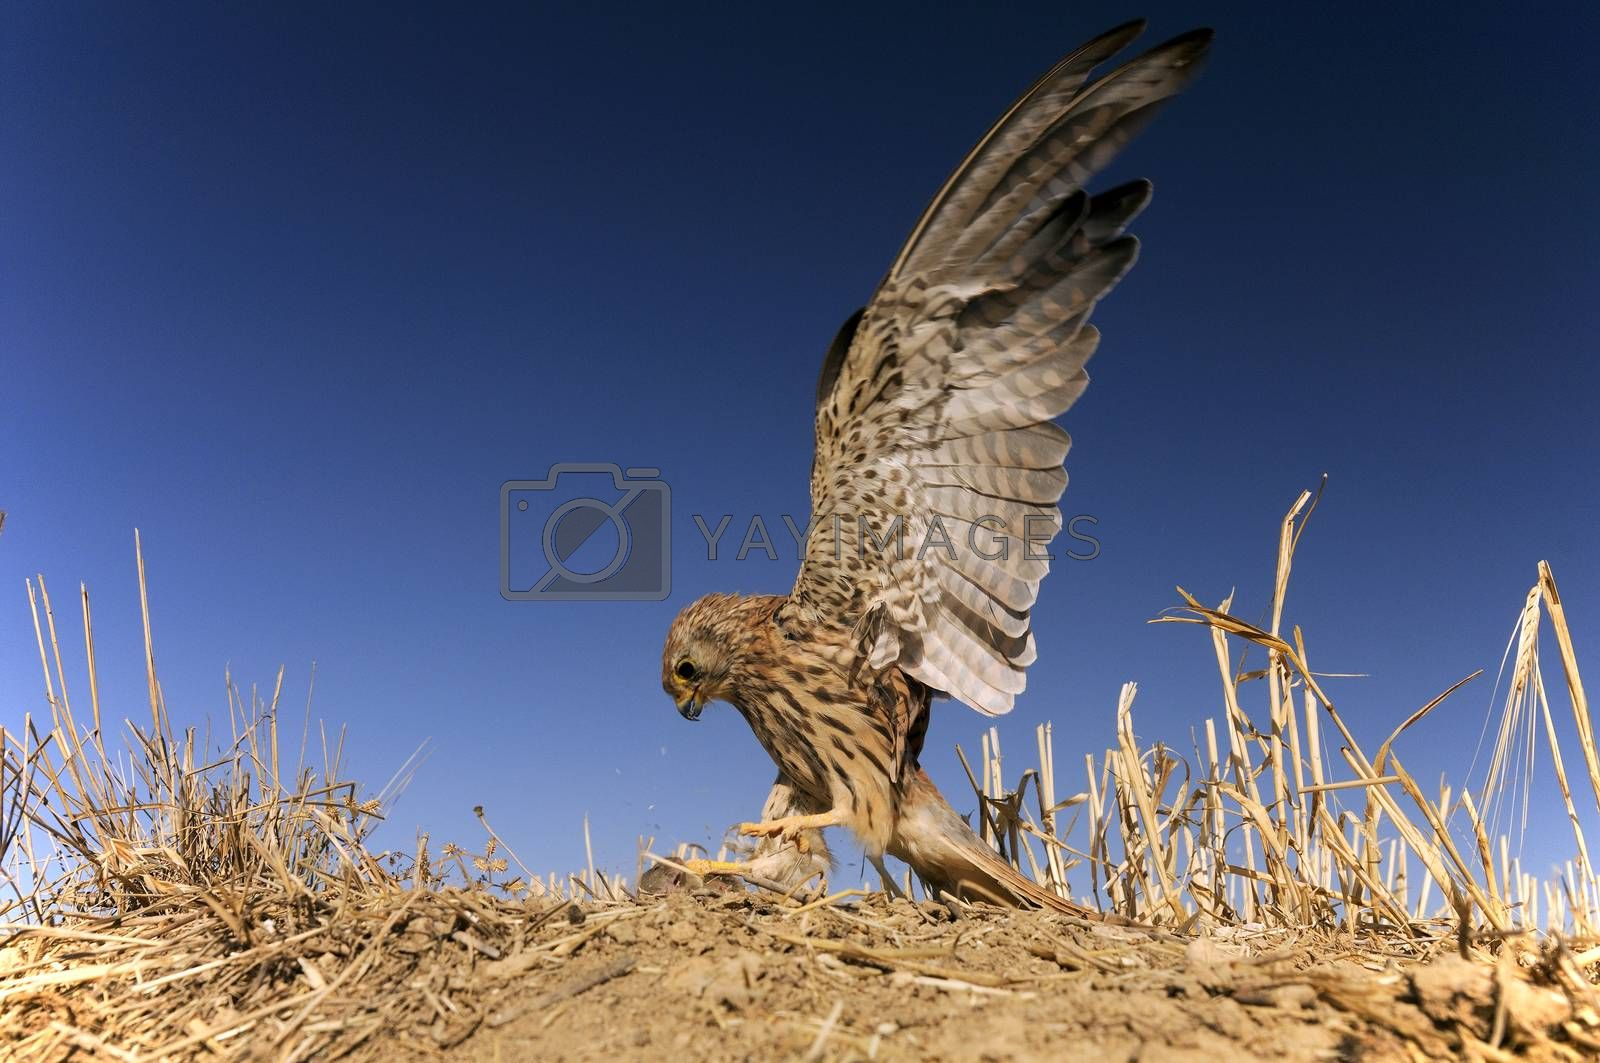 Lesser kestrel, female, hunting a mouse, Falco naumanni